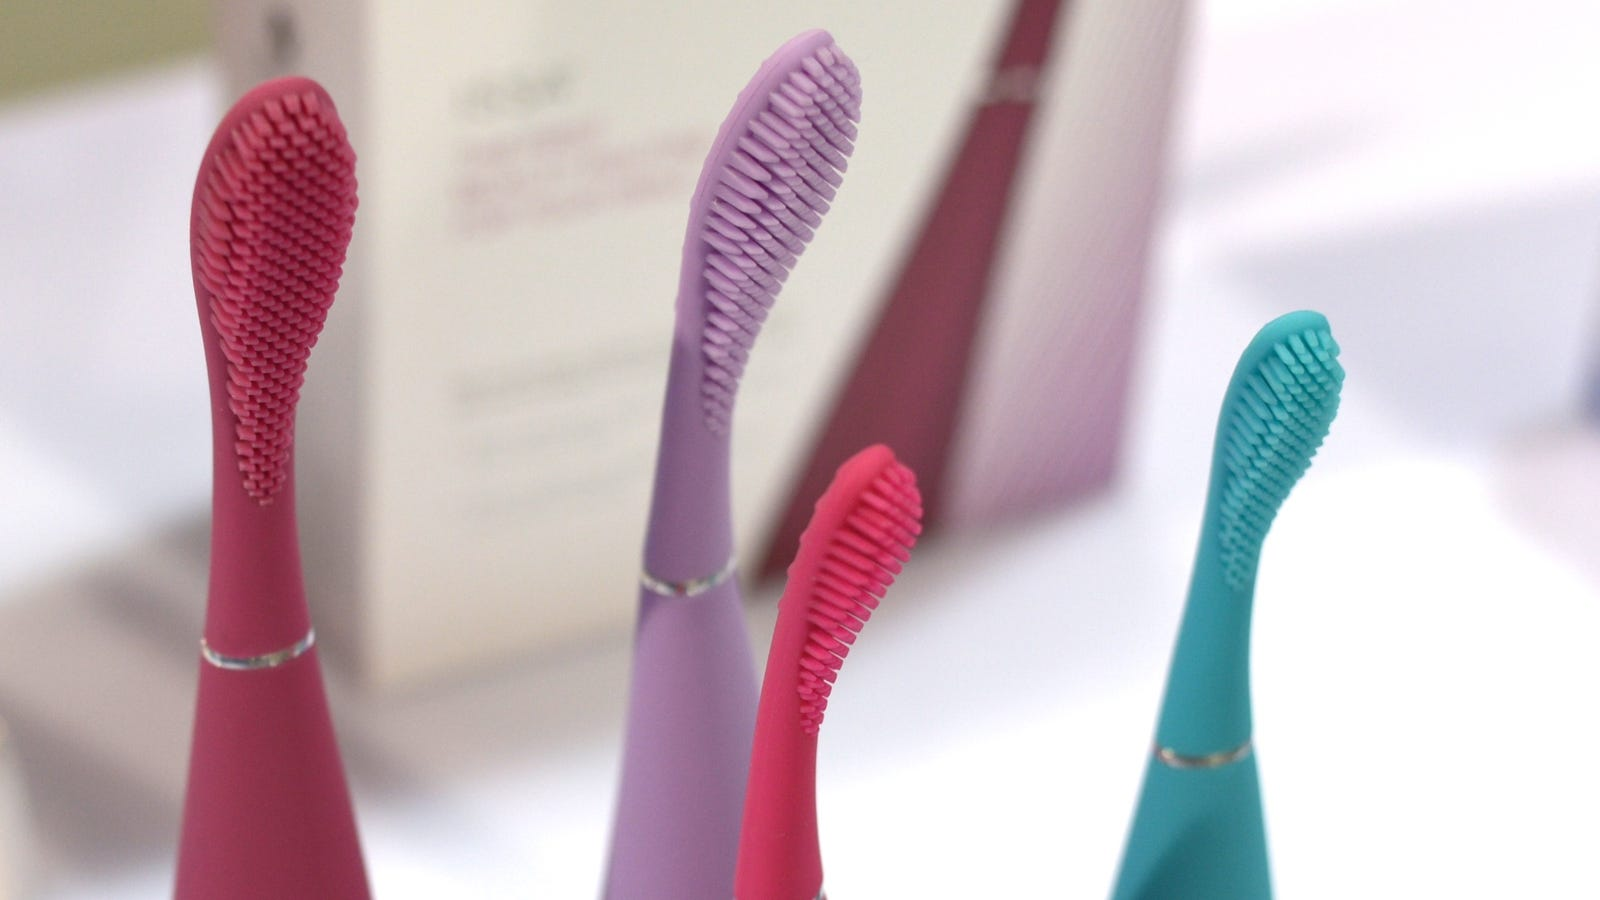 vibrator using toothbrush a sonicare as